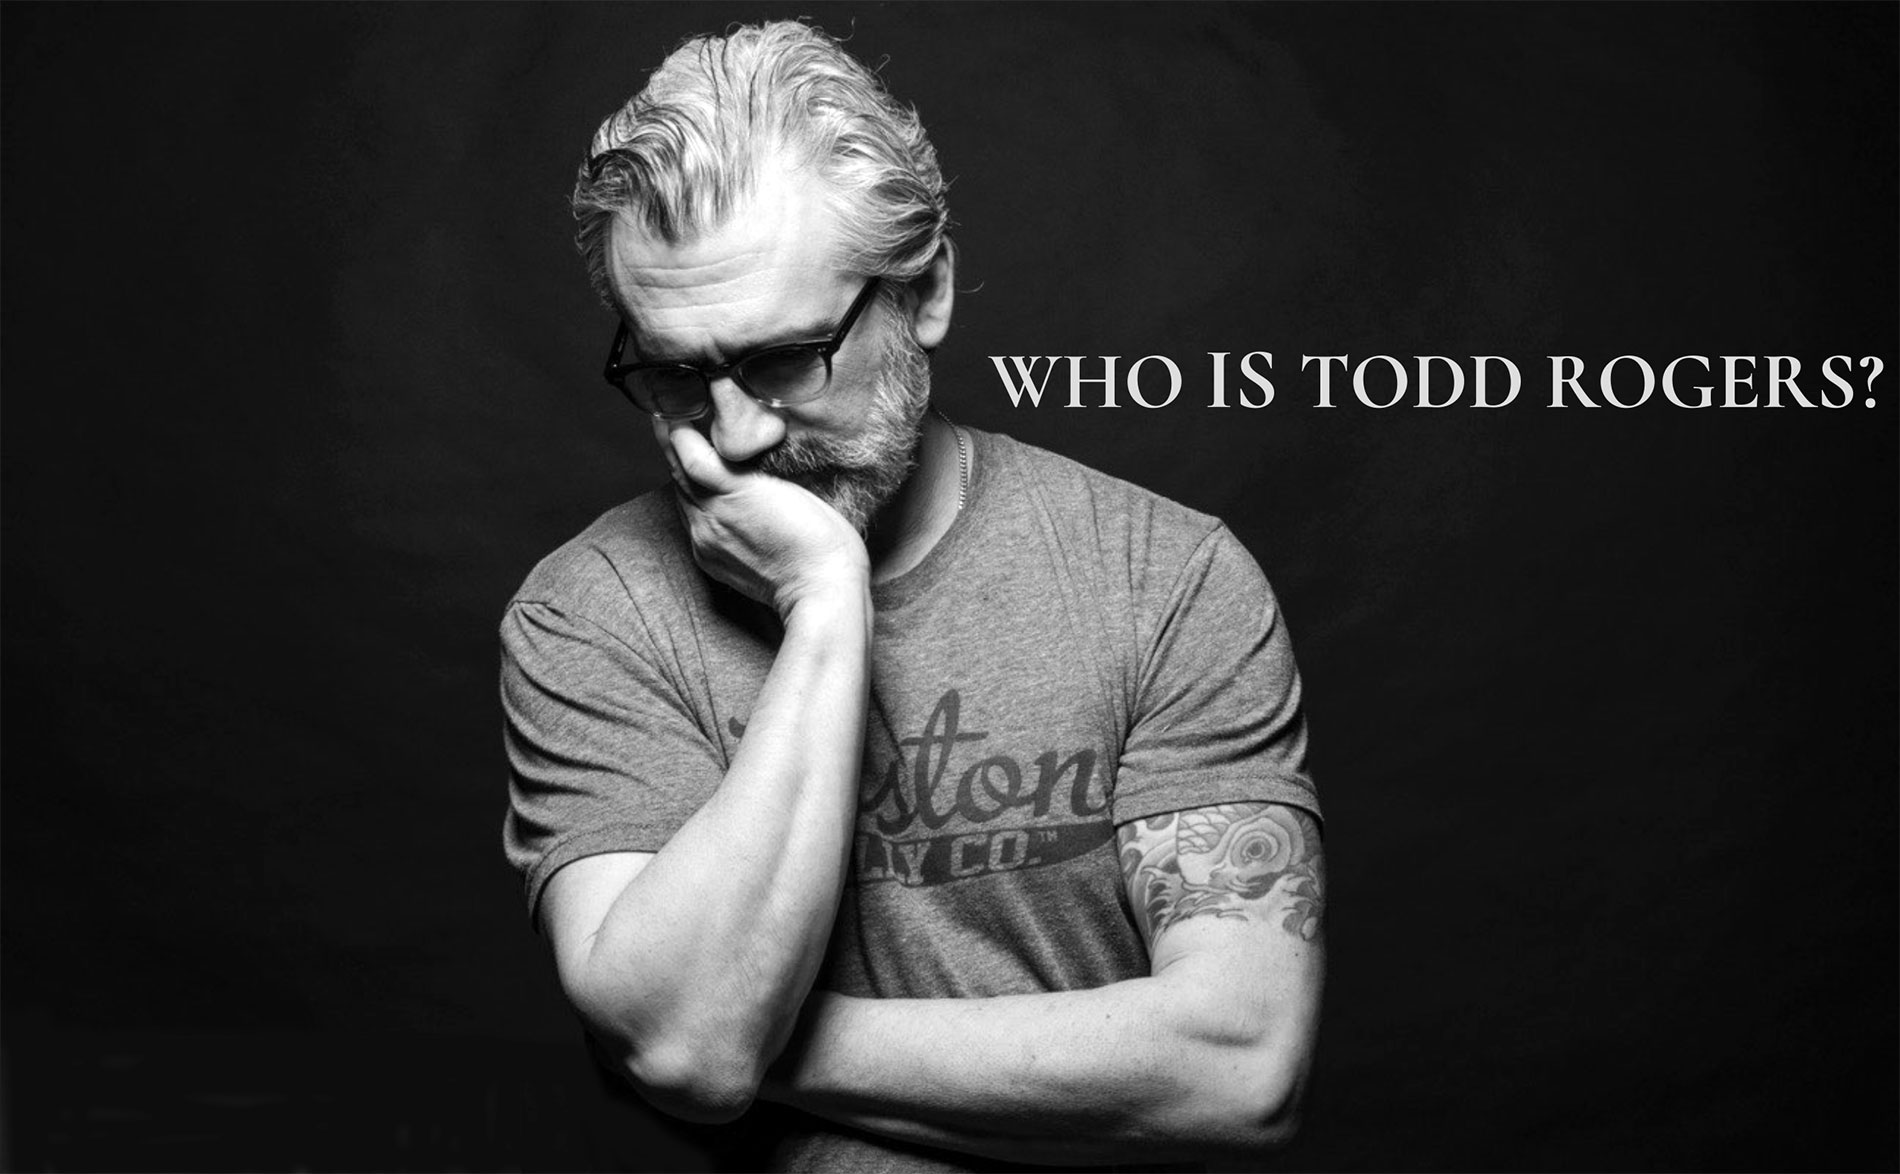 Who Is Todd Rogers?